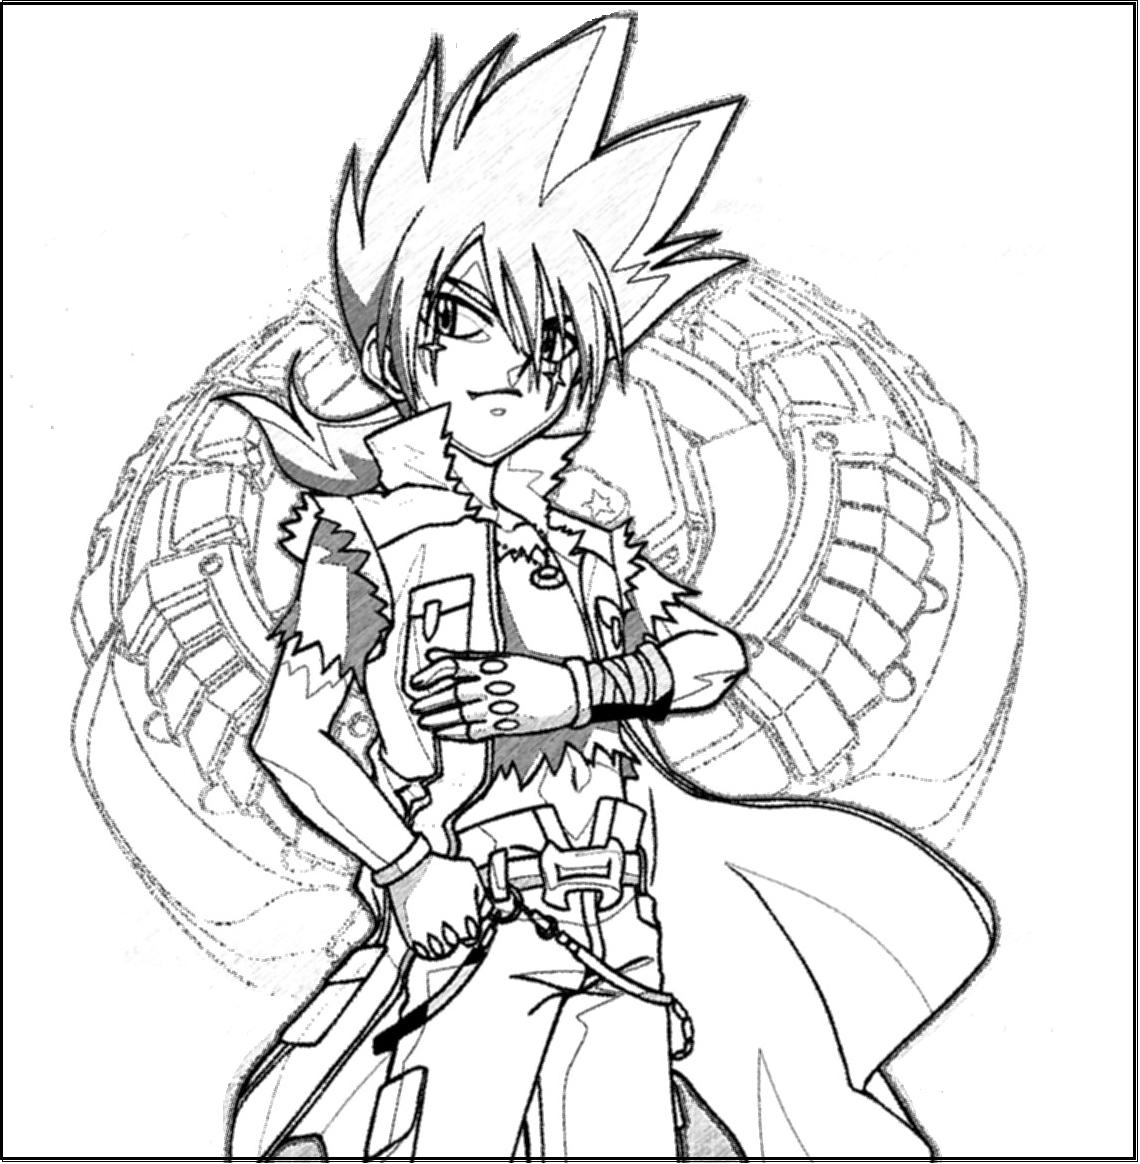 beyblade characters coloring pages beyblade free to color for children beyblade kids characters beyblade pages coloring